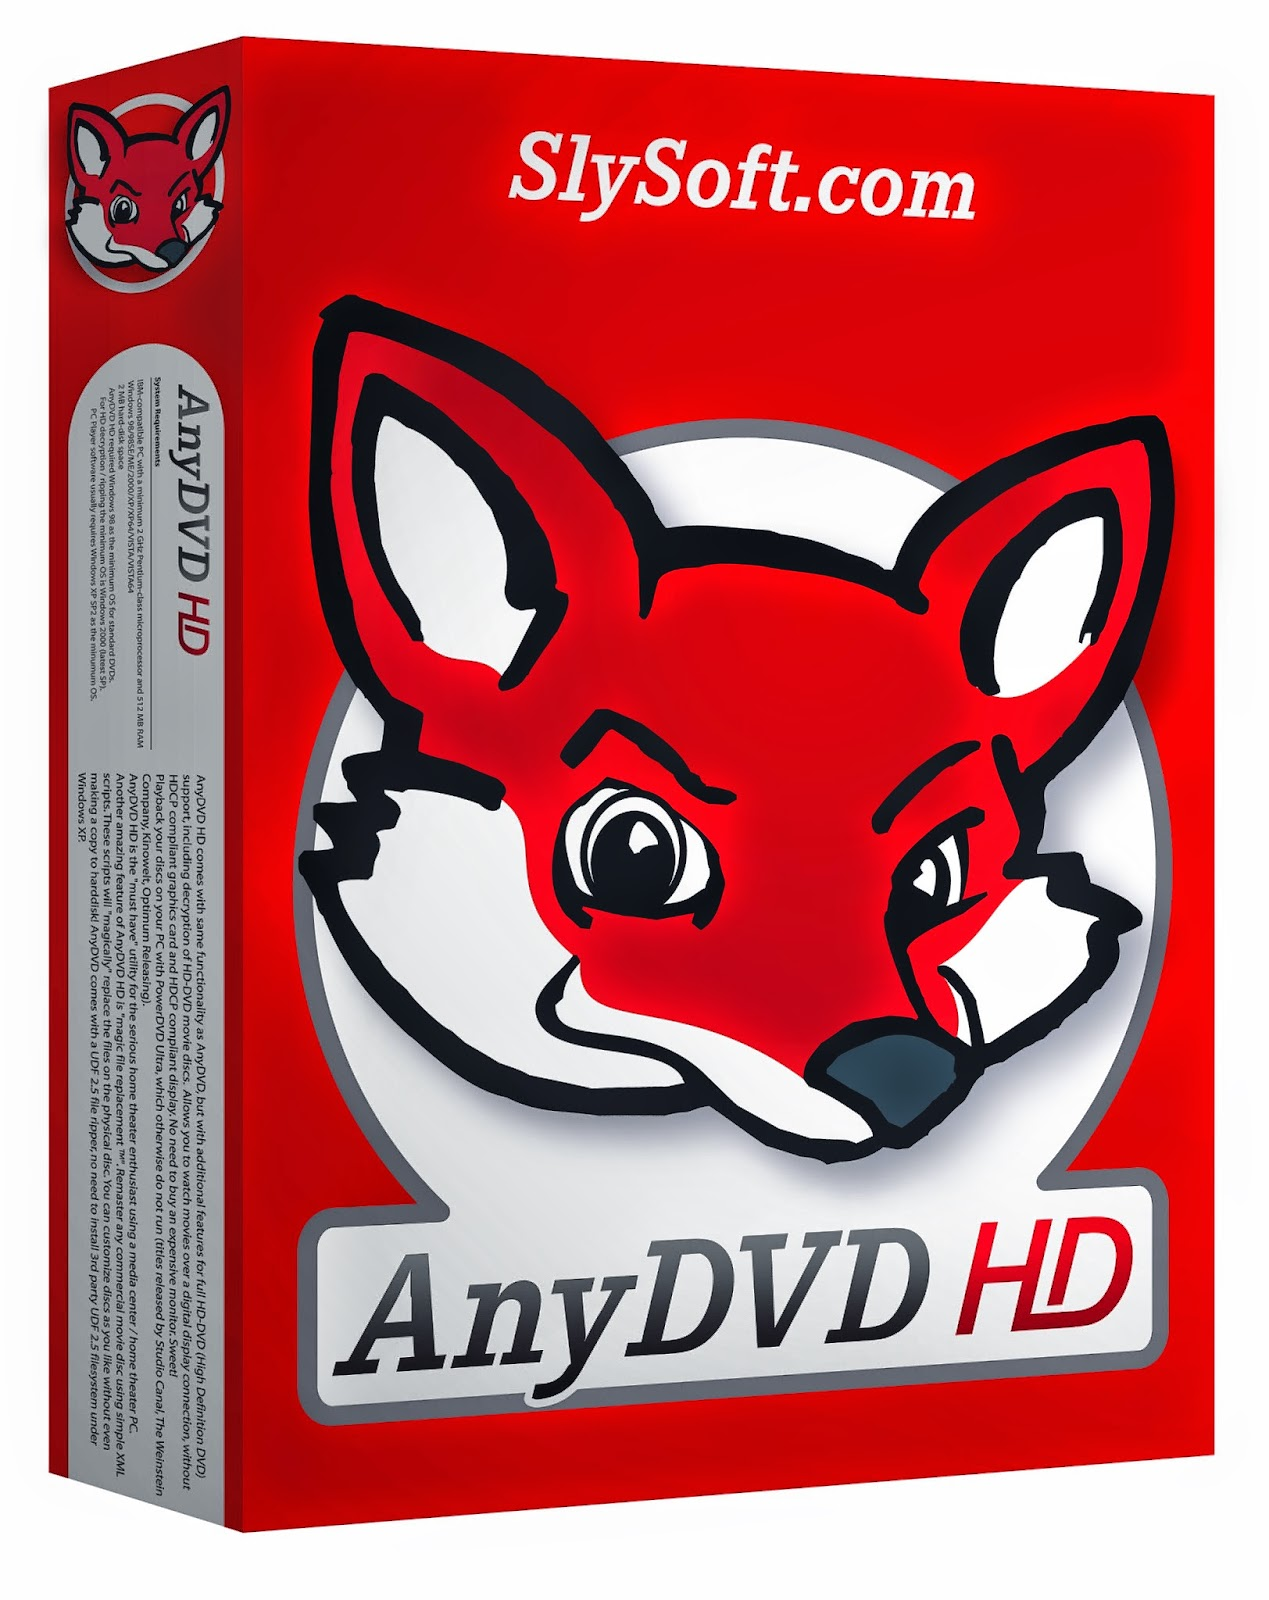 Slysoft anydvd hd v7.1.0.0 final cracked brd